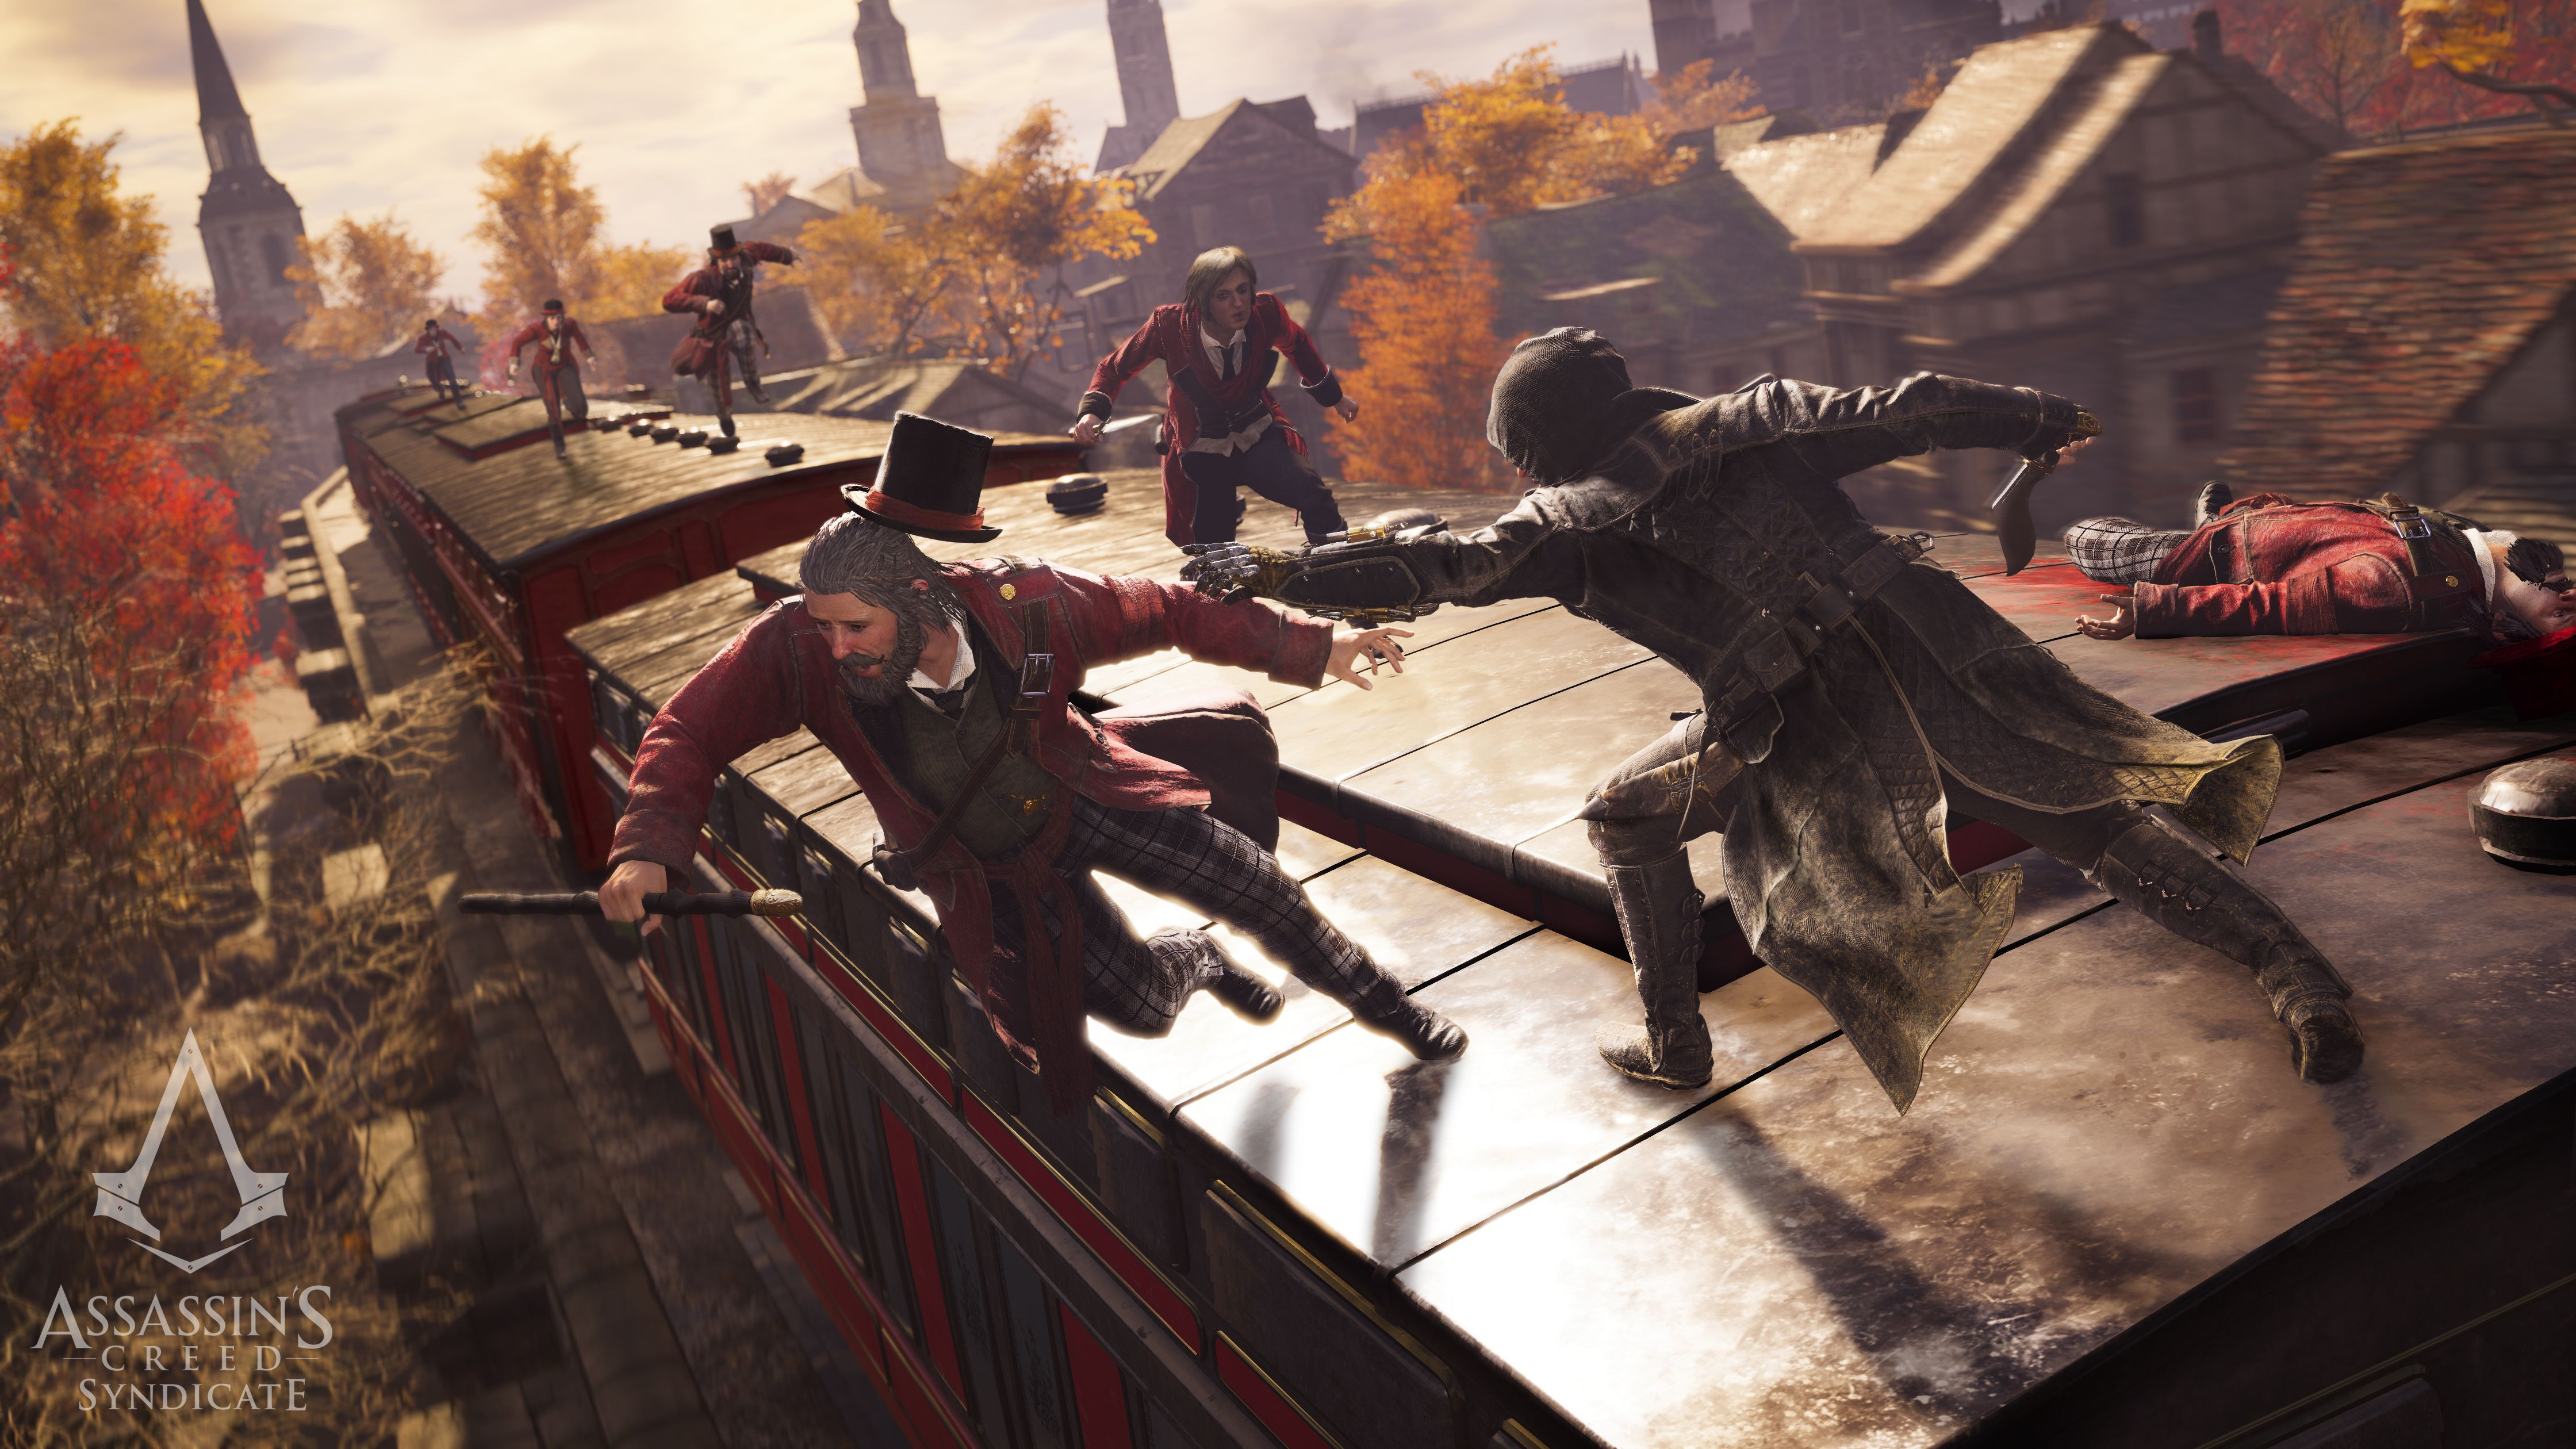 Assassin's Creed Syndicate Amazing 4K Screenshots and Art